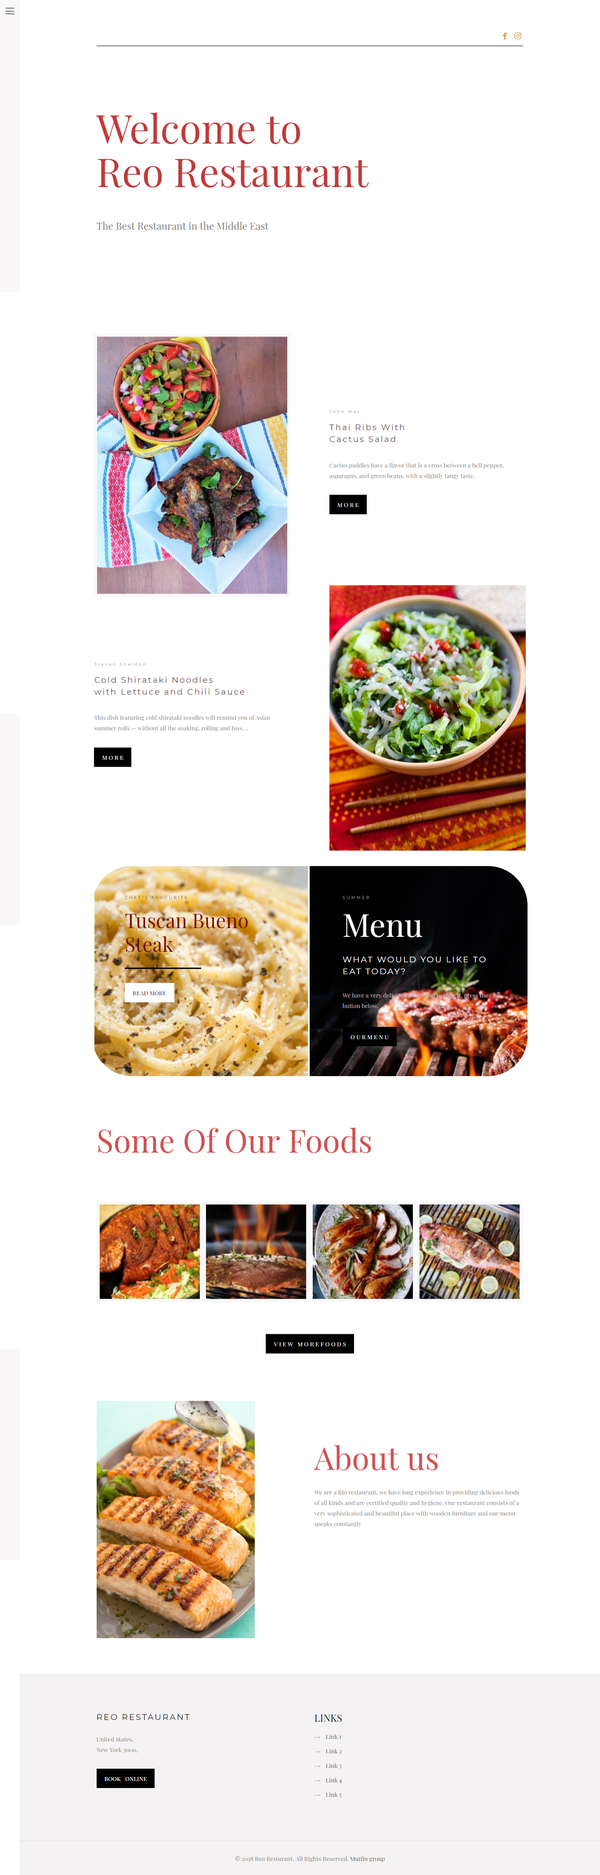 Reo Resturant Website Preview 1